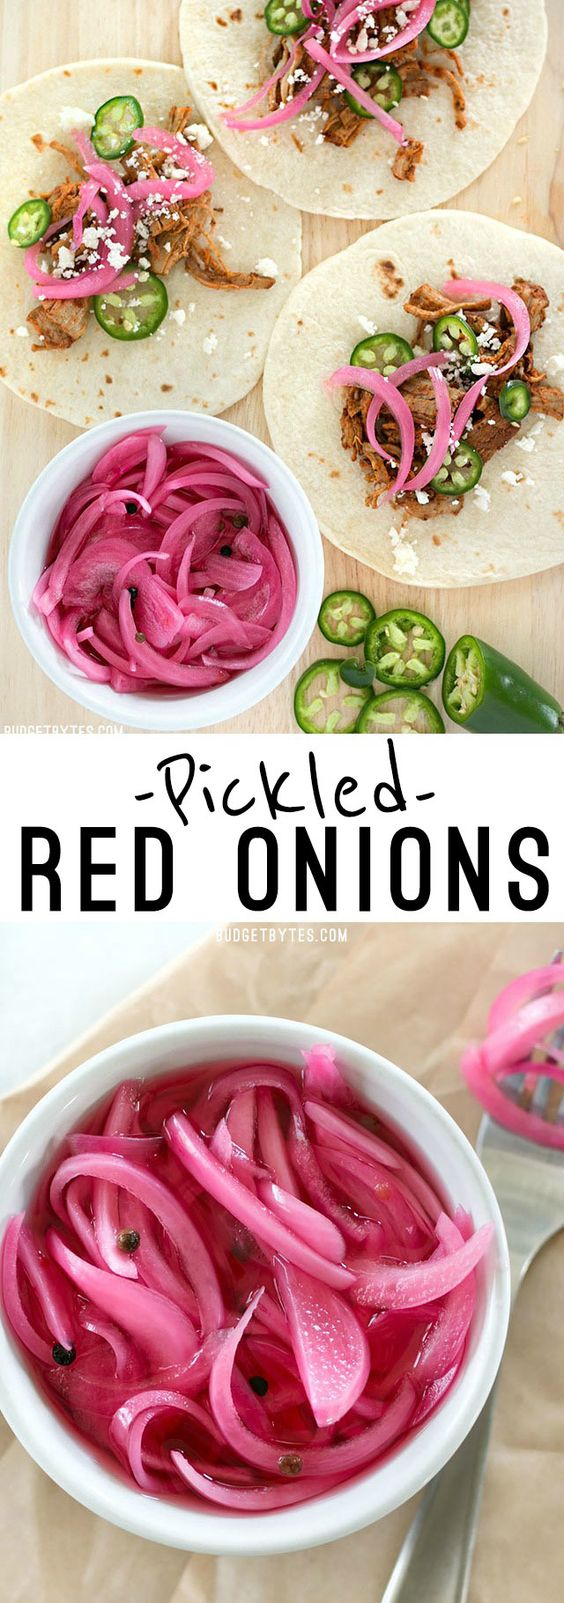 Pickled Red Onions are a great way to use leftover red onion and are a great topping for tacos, sandwiches, pizza, and more. @budgetbytes